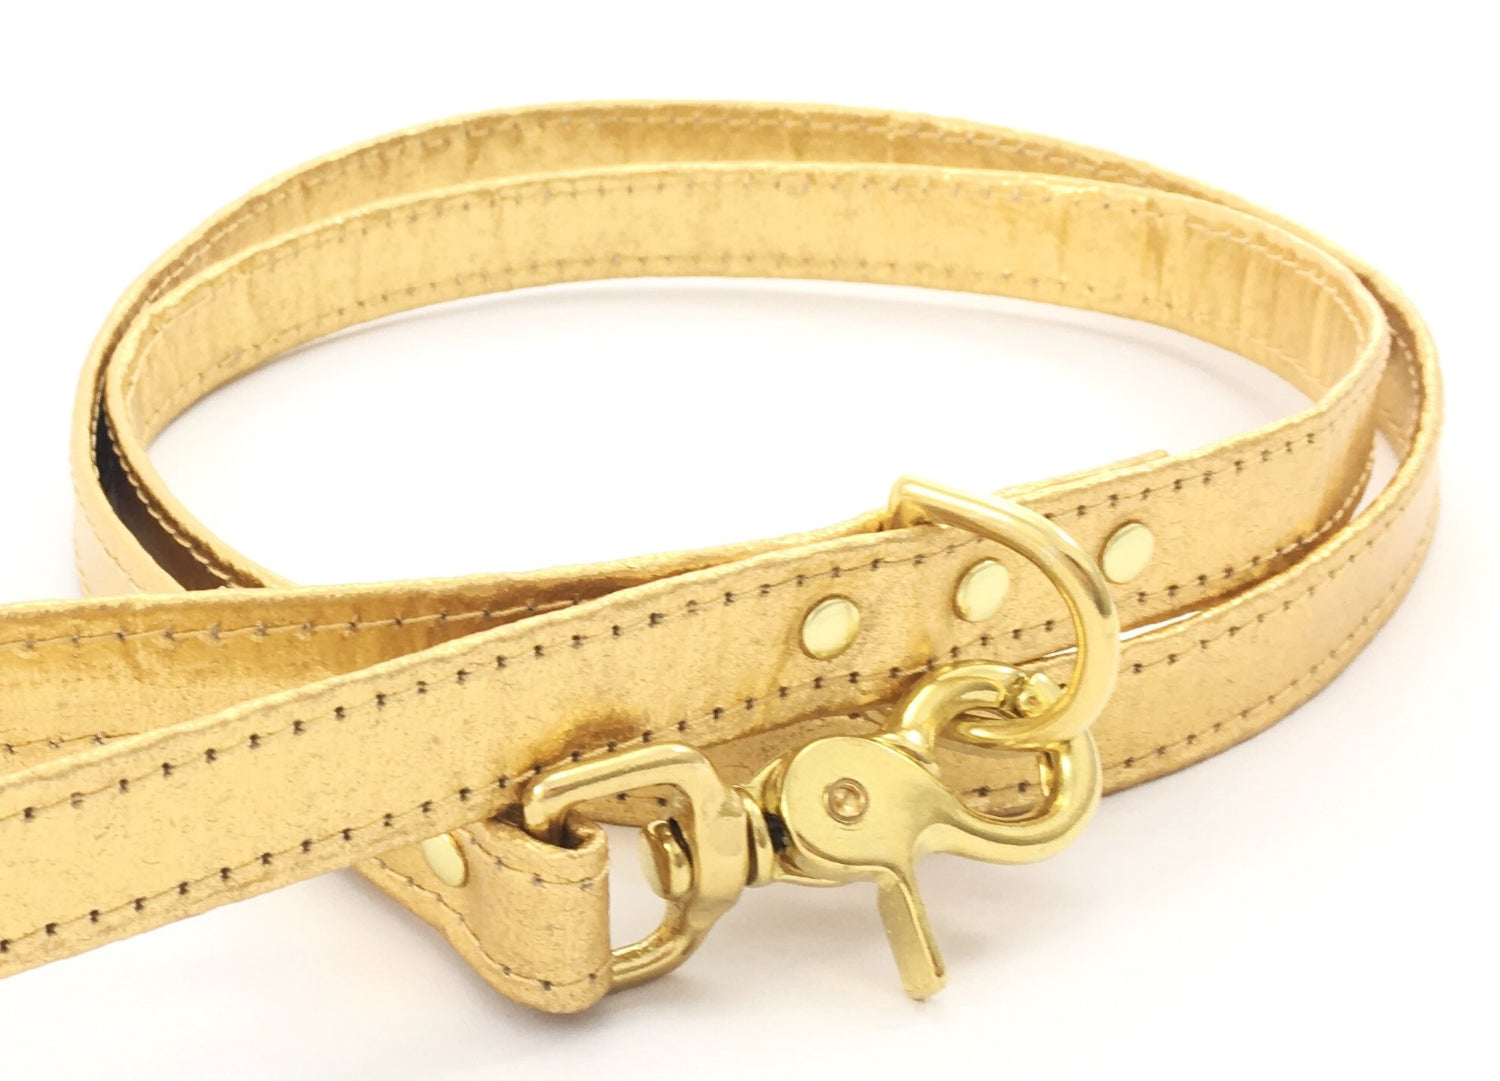 Gold dog lead / leash in unique Pinatex vegan leather with solid brass trigger snap hook